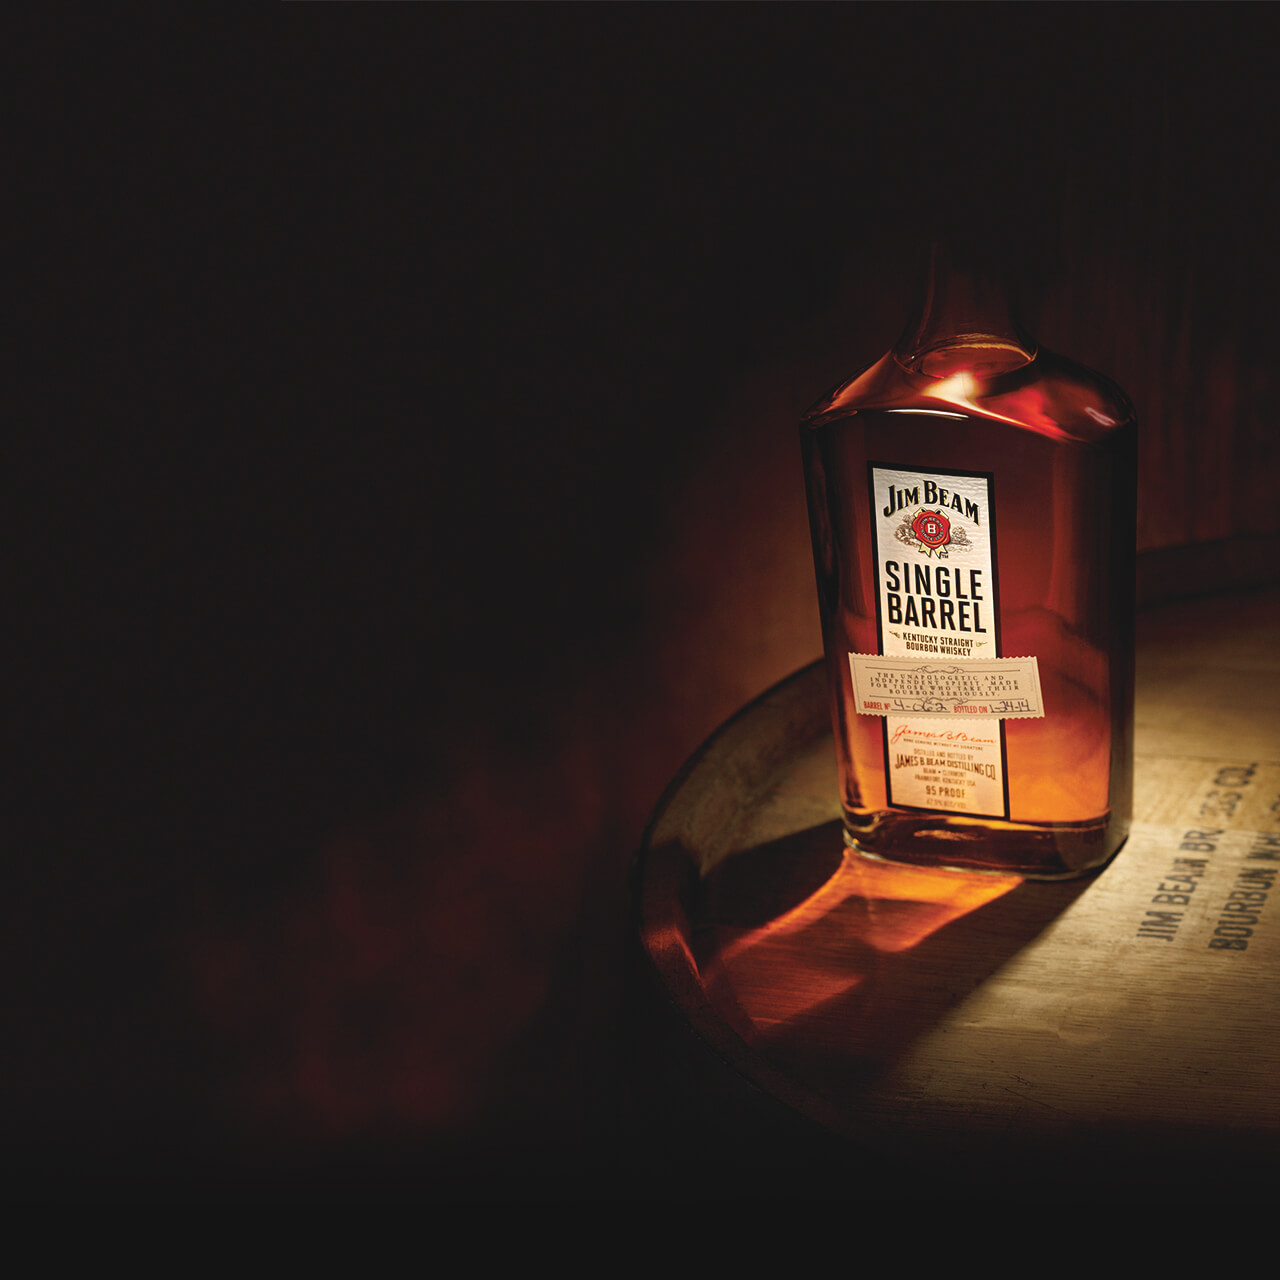 A bottle Jim Beam Single Barrel standing on a barrel.